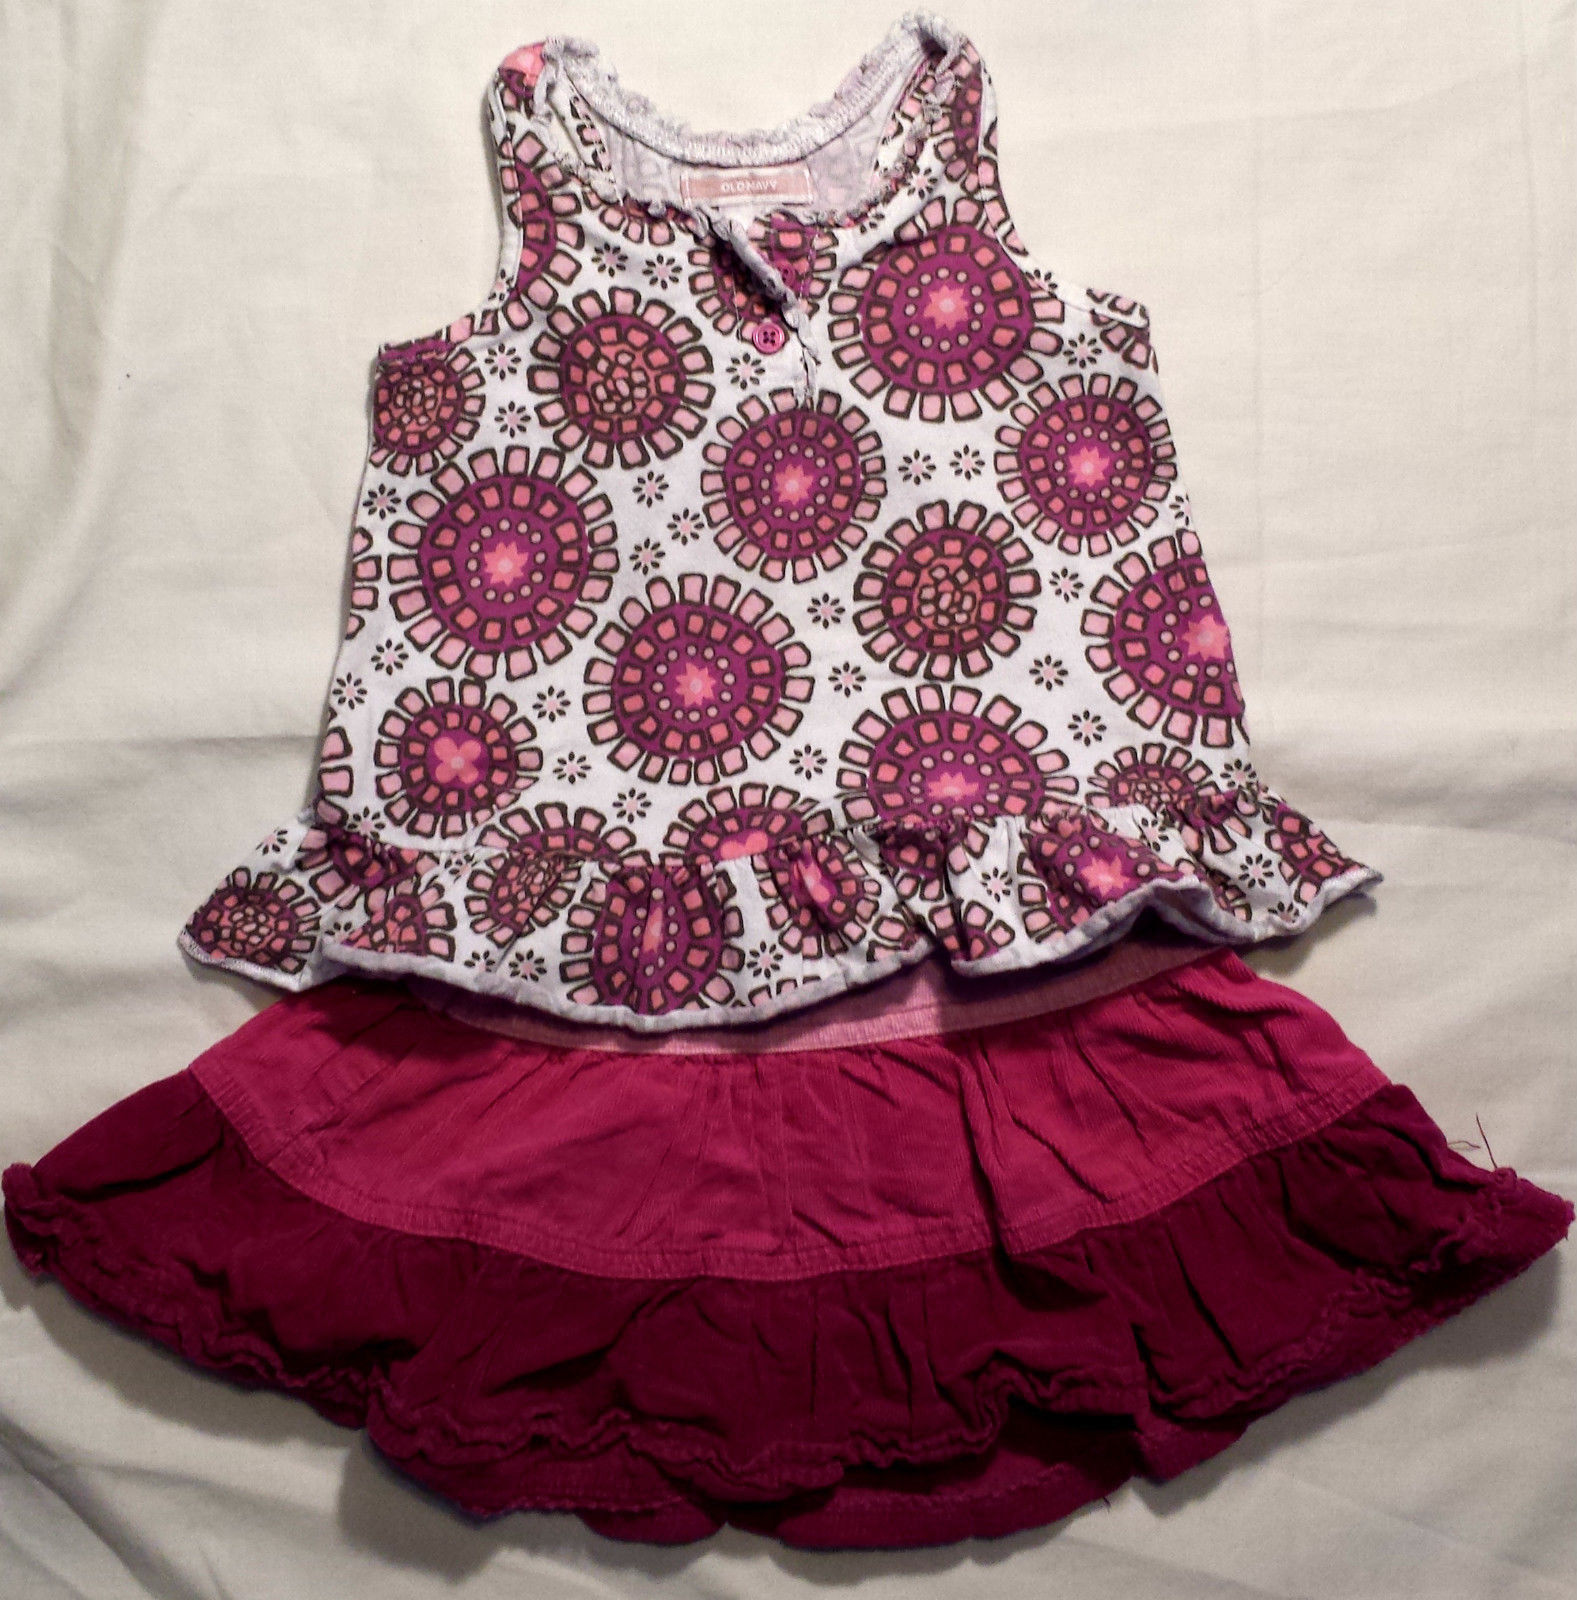 Girl's Size 24 M 18-24 Months White Floral Old Navy Top, Pink Corduroy TCP Skirt